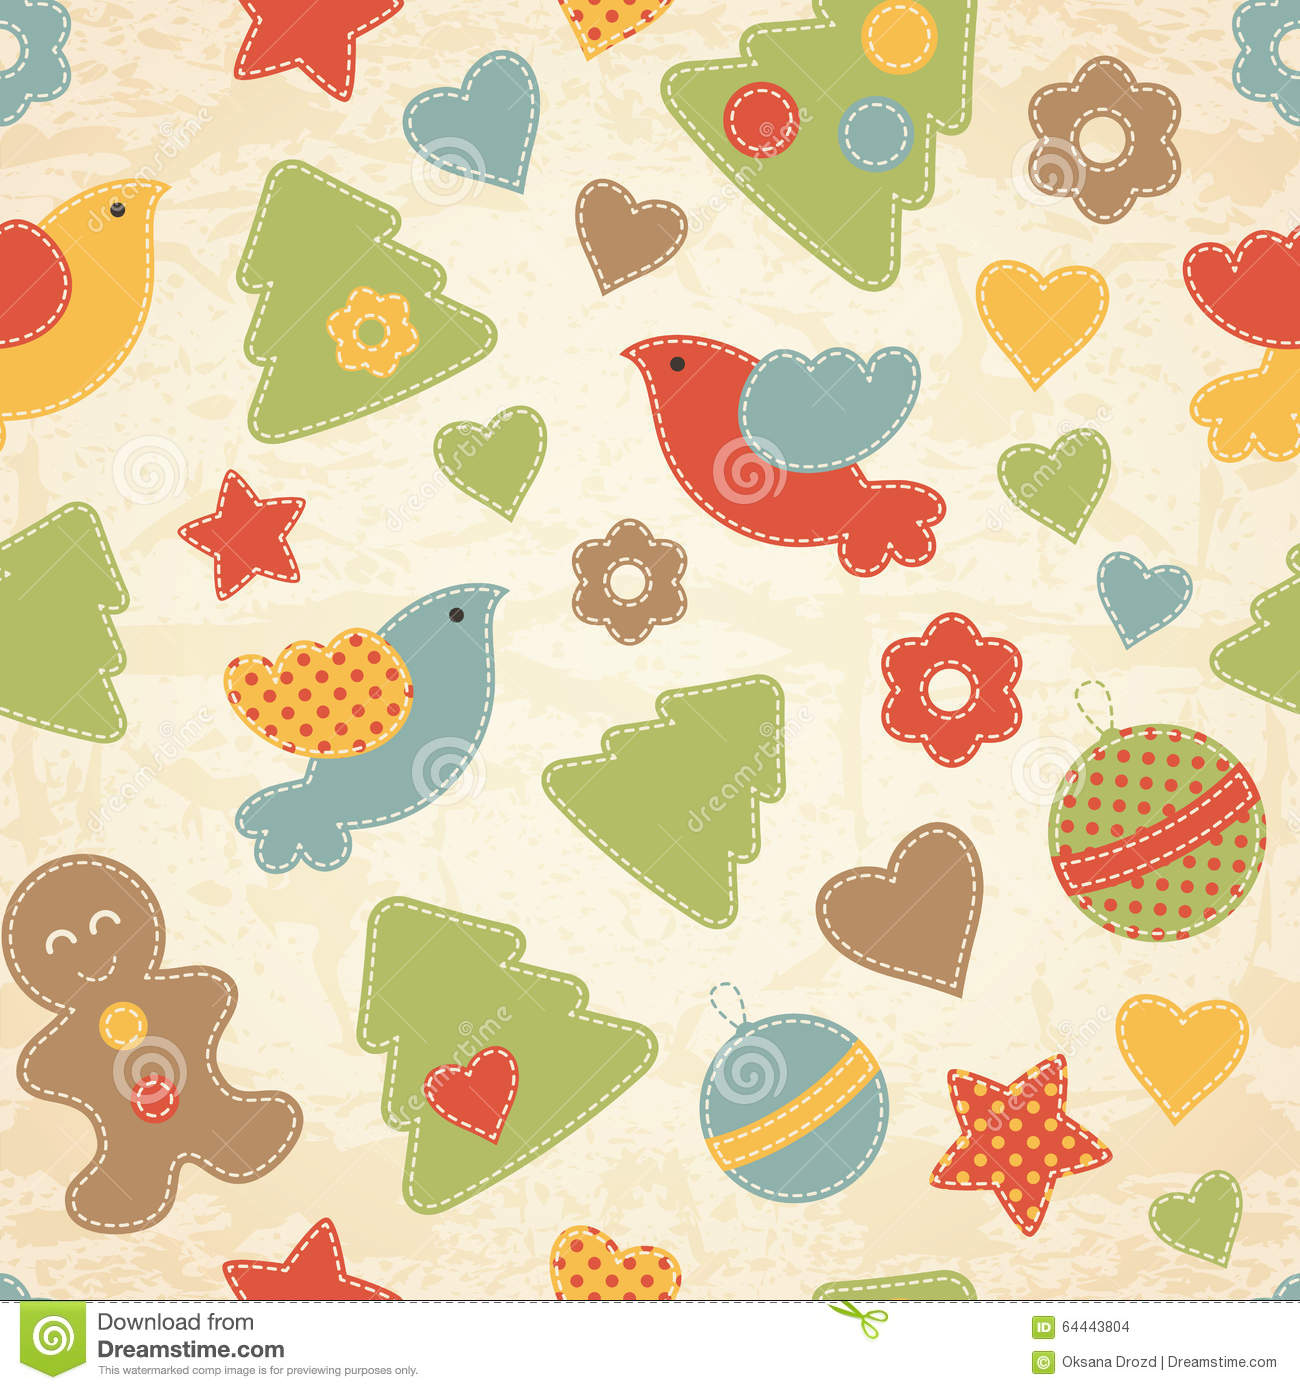 Childish Christmas seamless pattern with Christmas trees, birds, gingerbread men